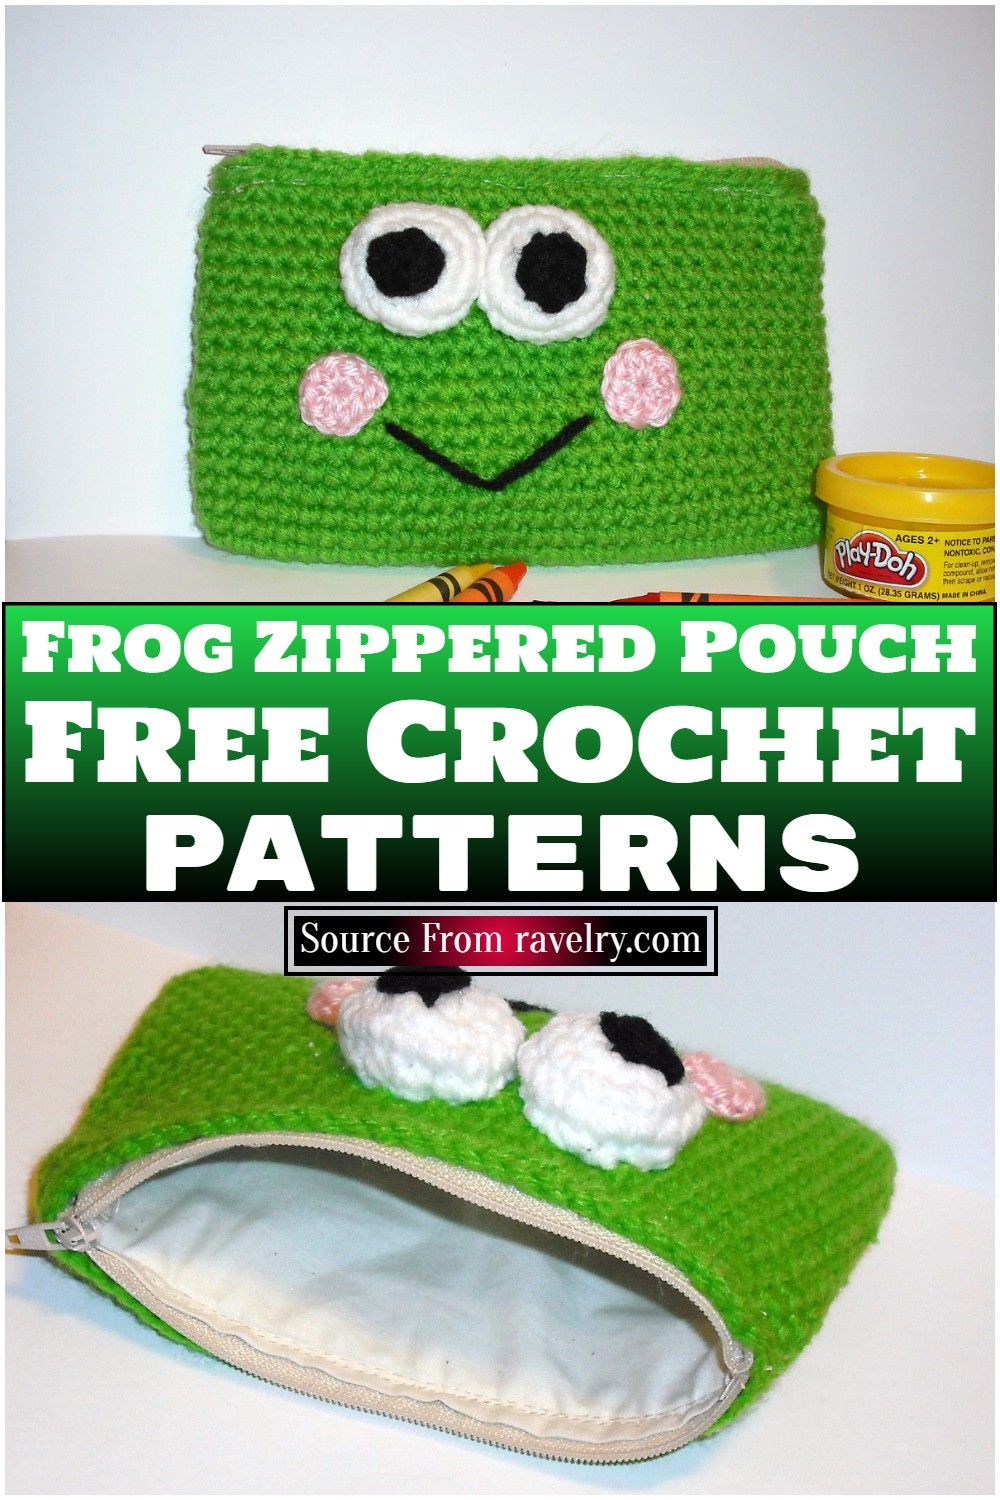 Free Crochet Frog Zippered Pouch